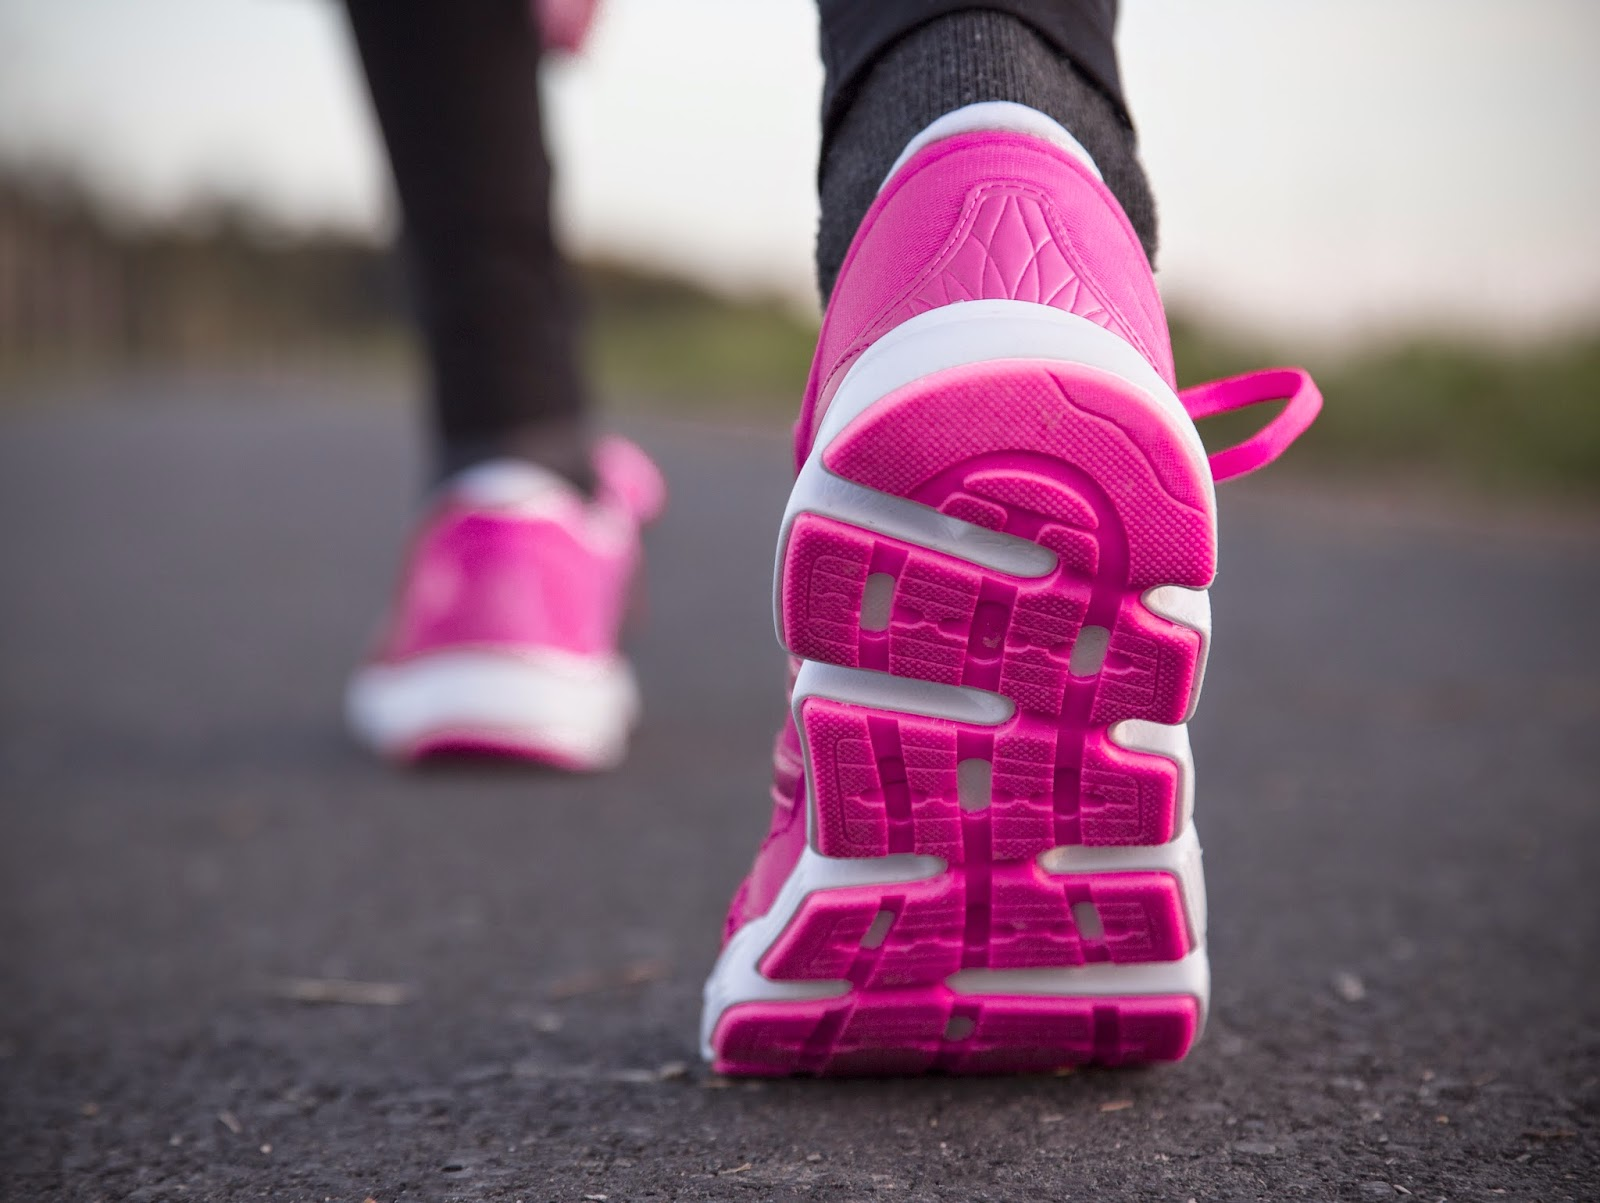 Tips for protecting your feet when running